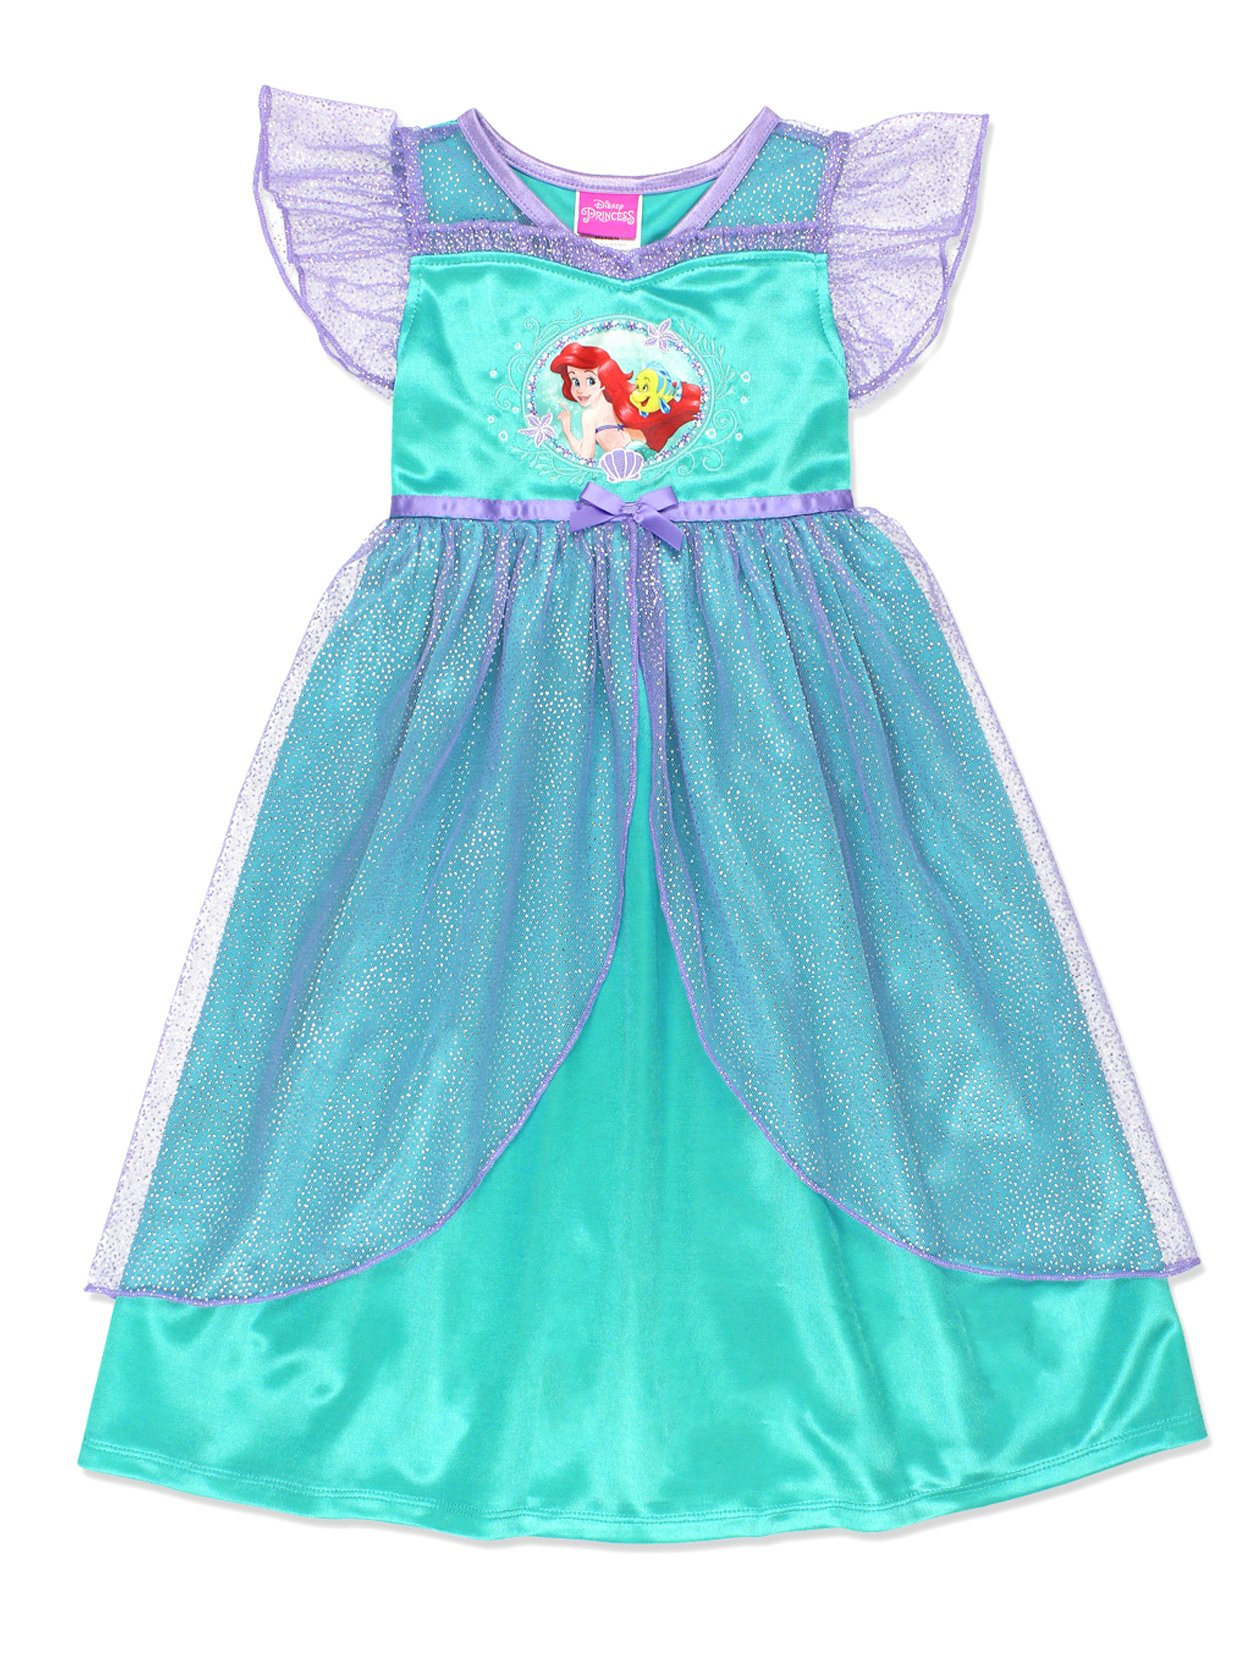 The Little Mermaid Ariel Girls Fantasy Gown Nightgown Pajamas (2T, Teal)